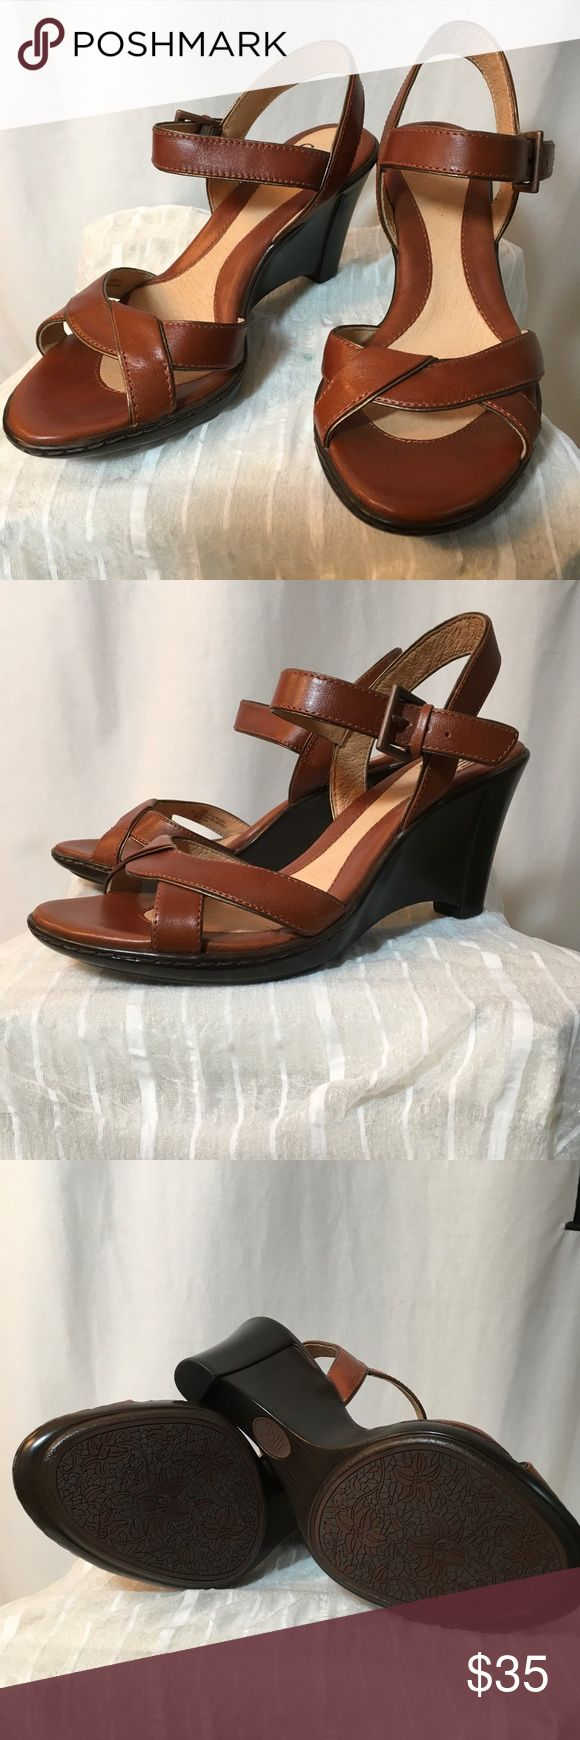 "Sofft Brand Cognac Leather Wedges Never Worn Never worn! This is a beautiful pair of wedge sandals in a classic cognac leather. Sofft is famous for their comfortable foot beds; in the words of the company, ""comfort without compromising style."" Scratch on underside of one shoe (see 4th picture,) small spot on one footbed (5th picture,) and small stain on inside of one ankle strap. None of these are apparent when shoes are worn. Step out in comfort! Sofft Shoes Wedges"